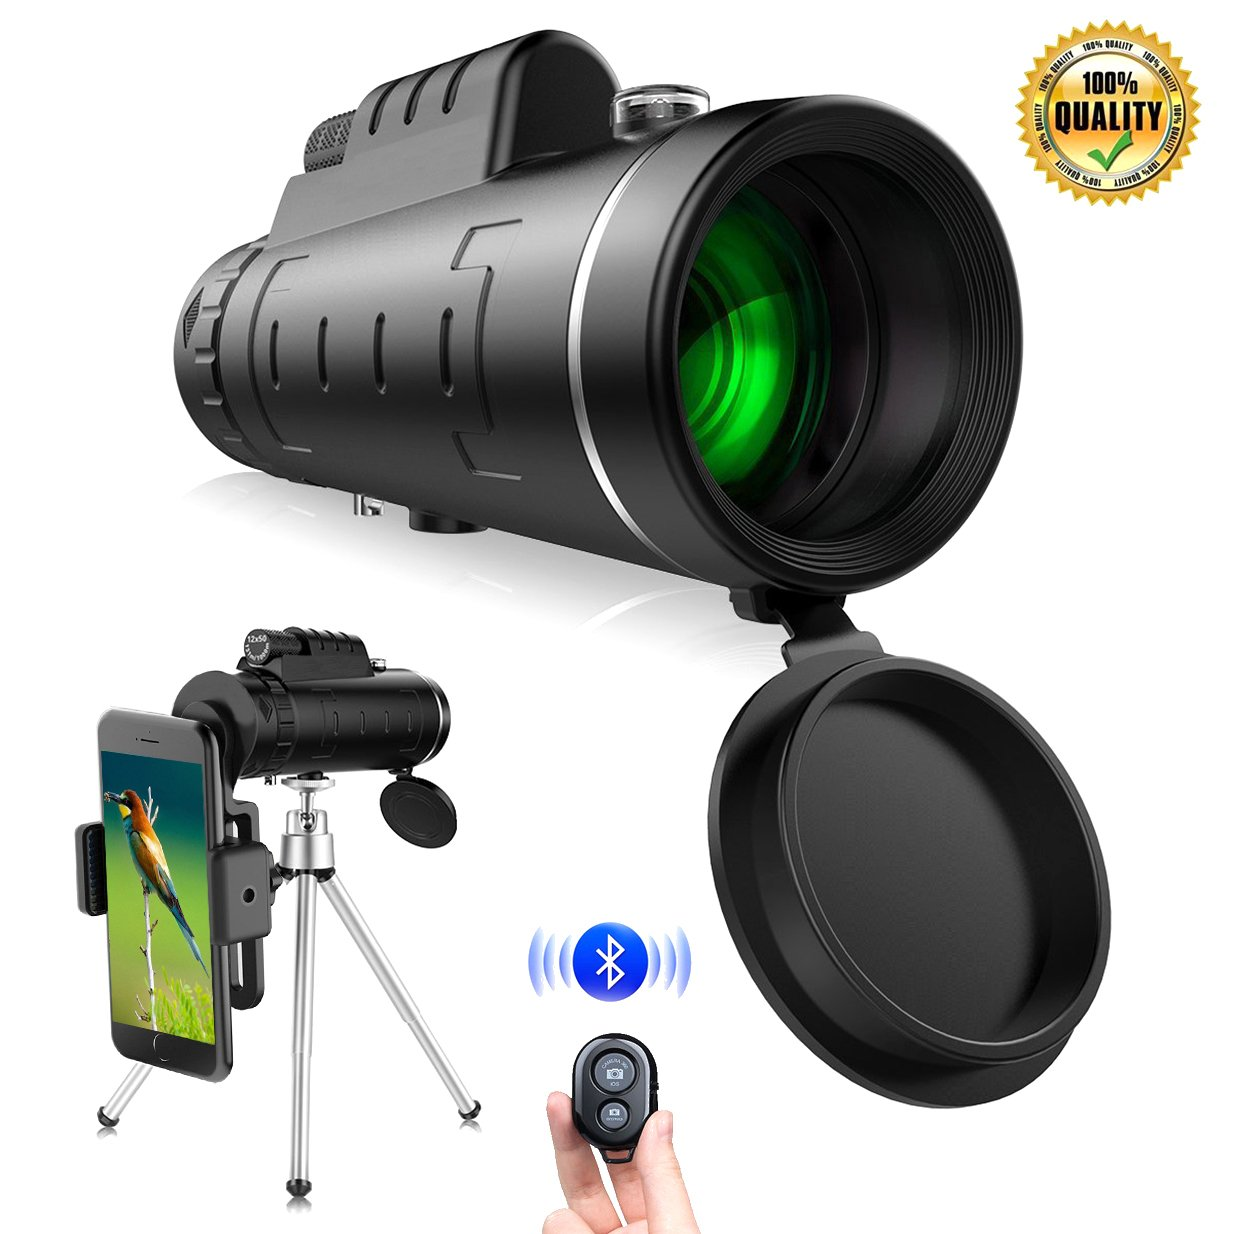 Monocular Telescopes, IHOMKIT 40x60 BAK4 Prism Waterproof Spotting Monocular Scopes, Low Night Vision for Outdoor Bird Watching Hunting Camping Hiking,with Tripod and Phone Clip Adapter,Black by IHOMKIT